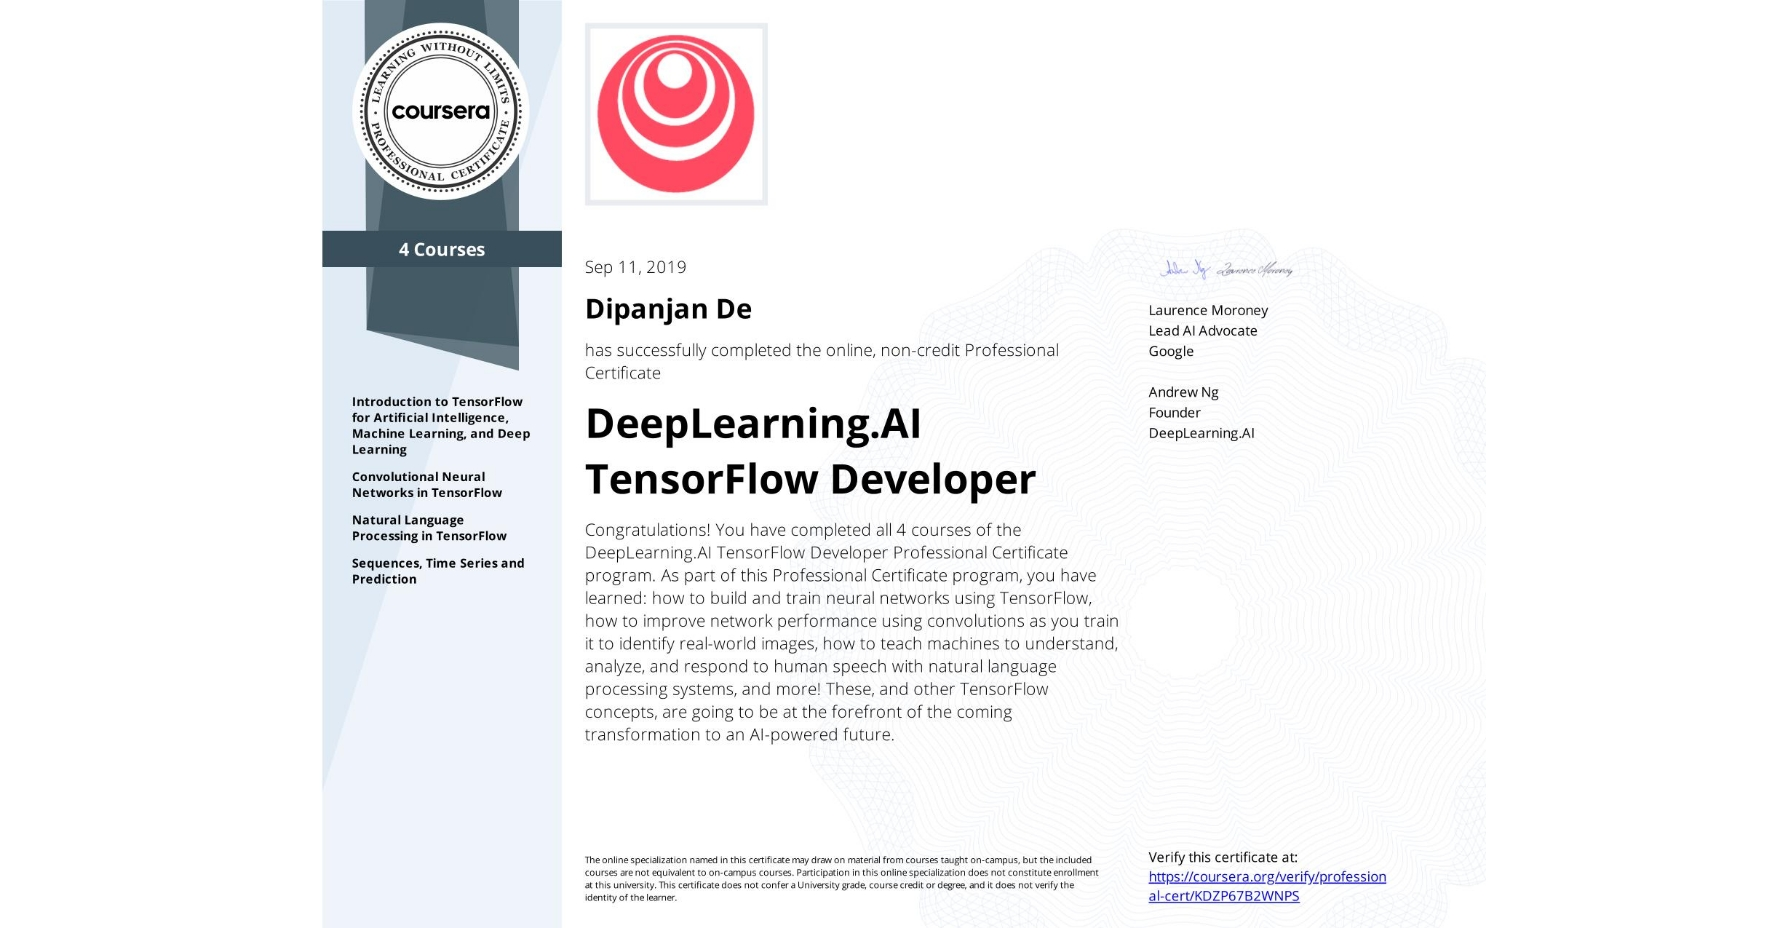 View certificate for Dipanjan De, DeepLearning.AI TensorFlow Developer, offered through Coursera. Congratulations! You have completed all 4 courses of the DeepLearning.AI TensorFlow Developer Professional Certificate program.   As part of this Professional Certificate program, you have learned: how to build and train neural networks using TensorFlow, how to improve network performance using convolutions as you train it to identify real-world images, how to teach machines to understand, analyze, and respond to human speech with natural language processing systems, and more!  These, and other TensorFlow concepts, are going to be at the forefront of the coming transformation to an AI-powered future.